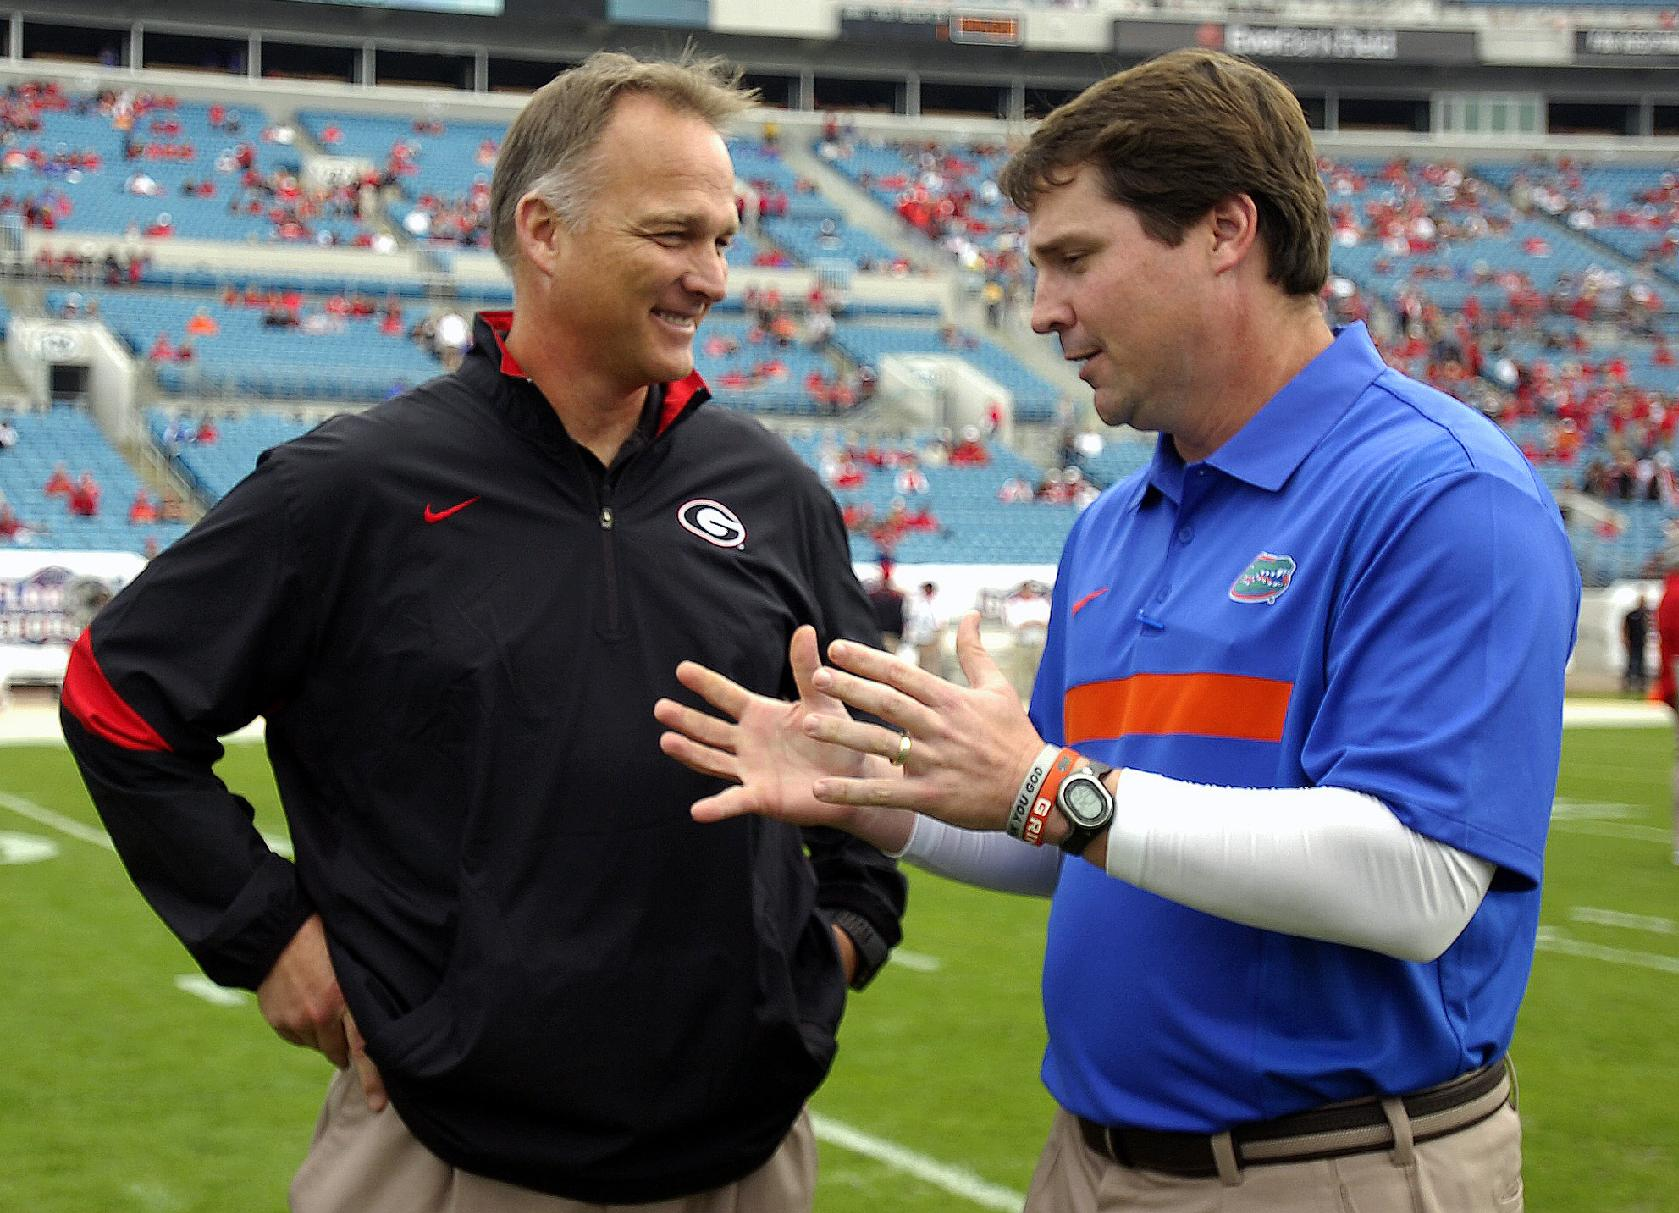 In this Oct. 29, 2011, file photo, Florida coach Will Muschamp, right, and Georgia coach Mark Richt talk before an NCAA college football game in Jacksonville, Fla. Georgia and Florida, teams that began the year with championship aspirations, have been ravaged by injuries and enter their annual Cocktail Party game at Jacksonville staring at the final gasp to make something of their disappointing seasons